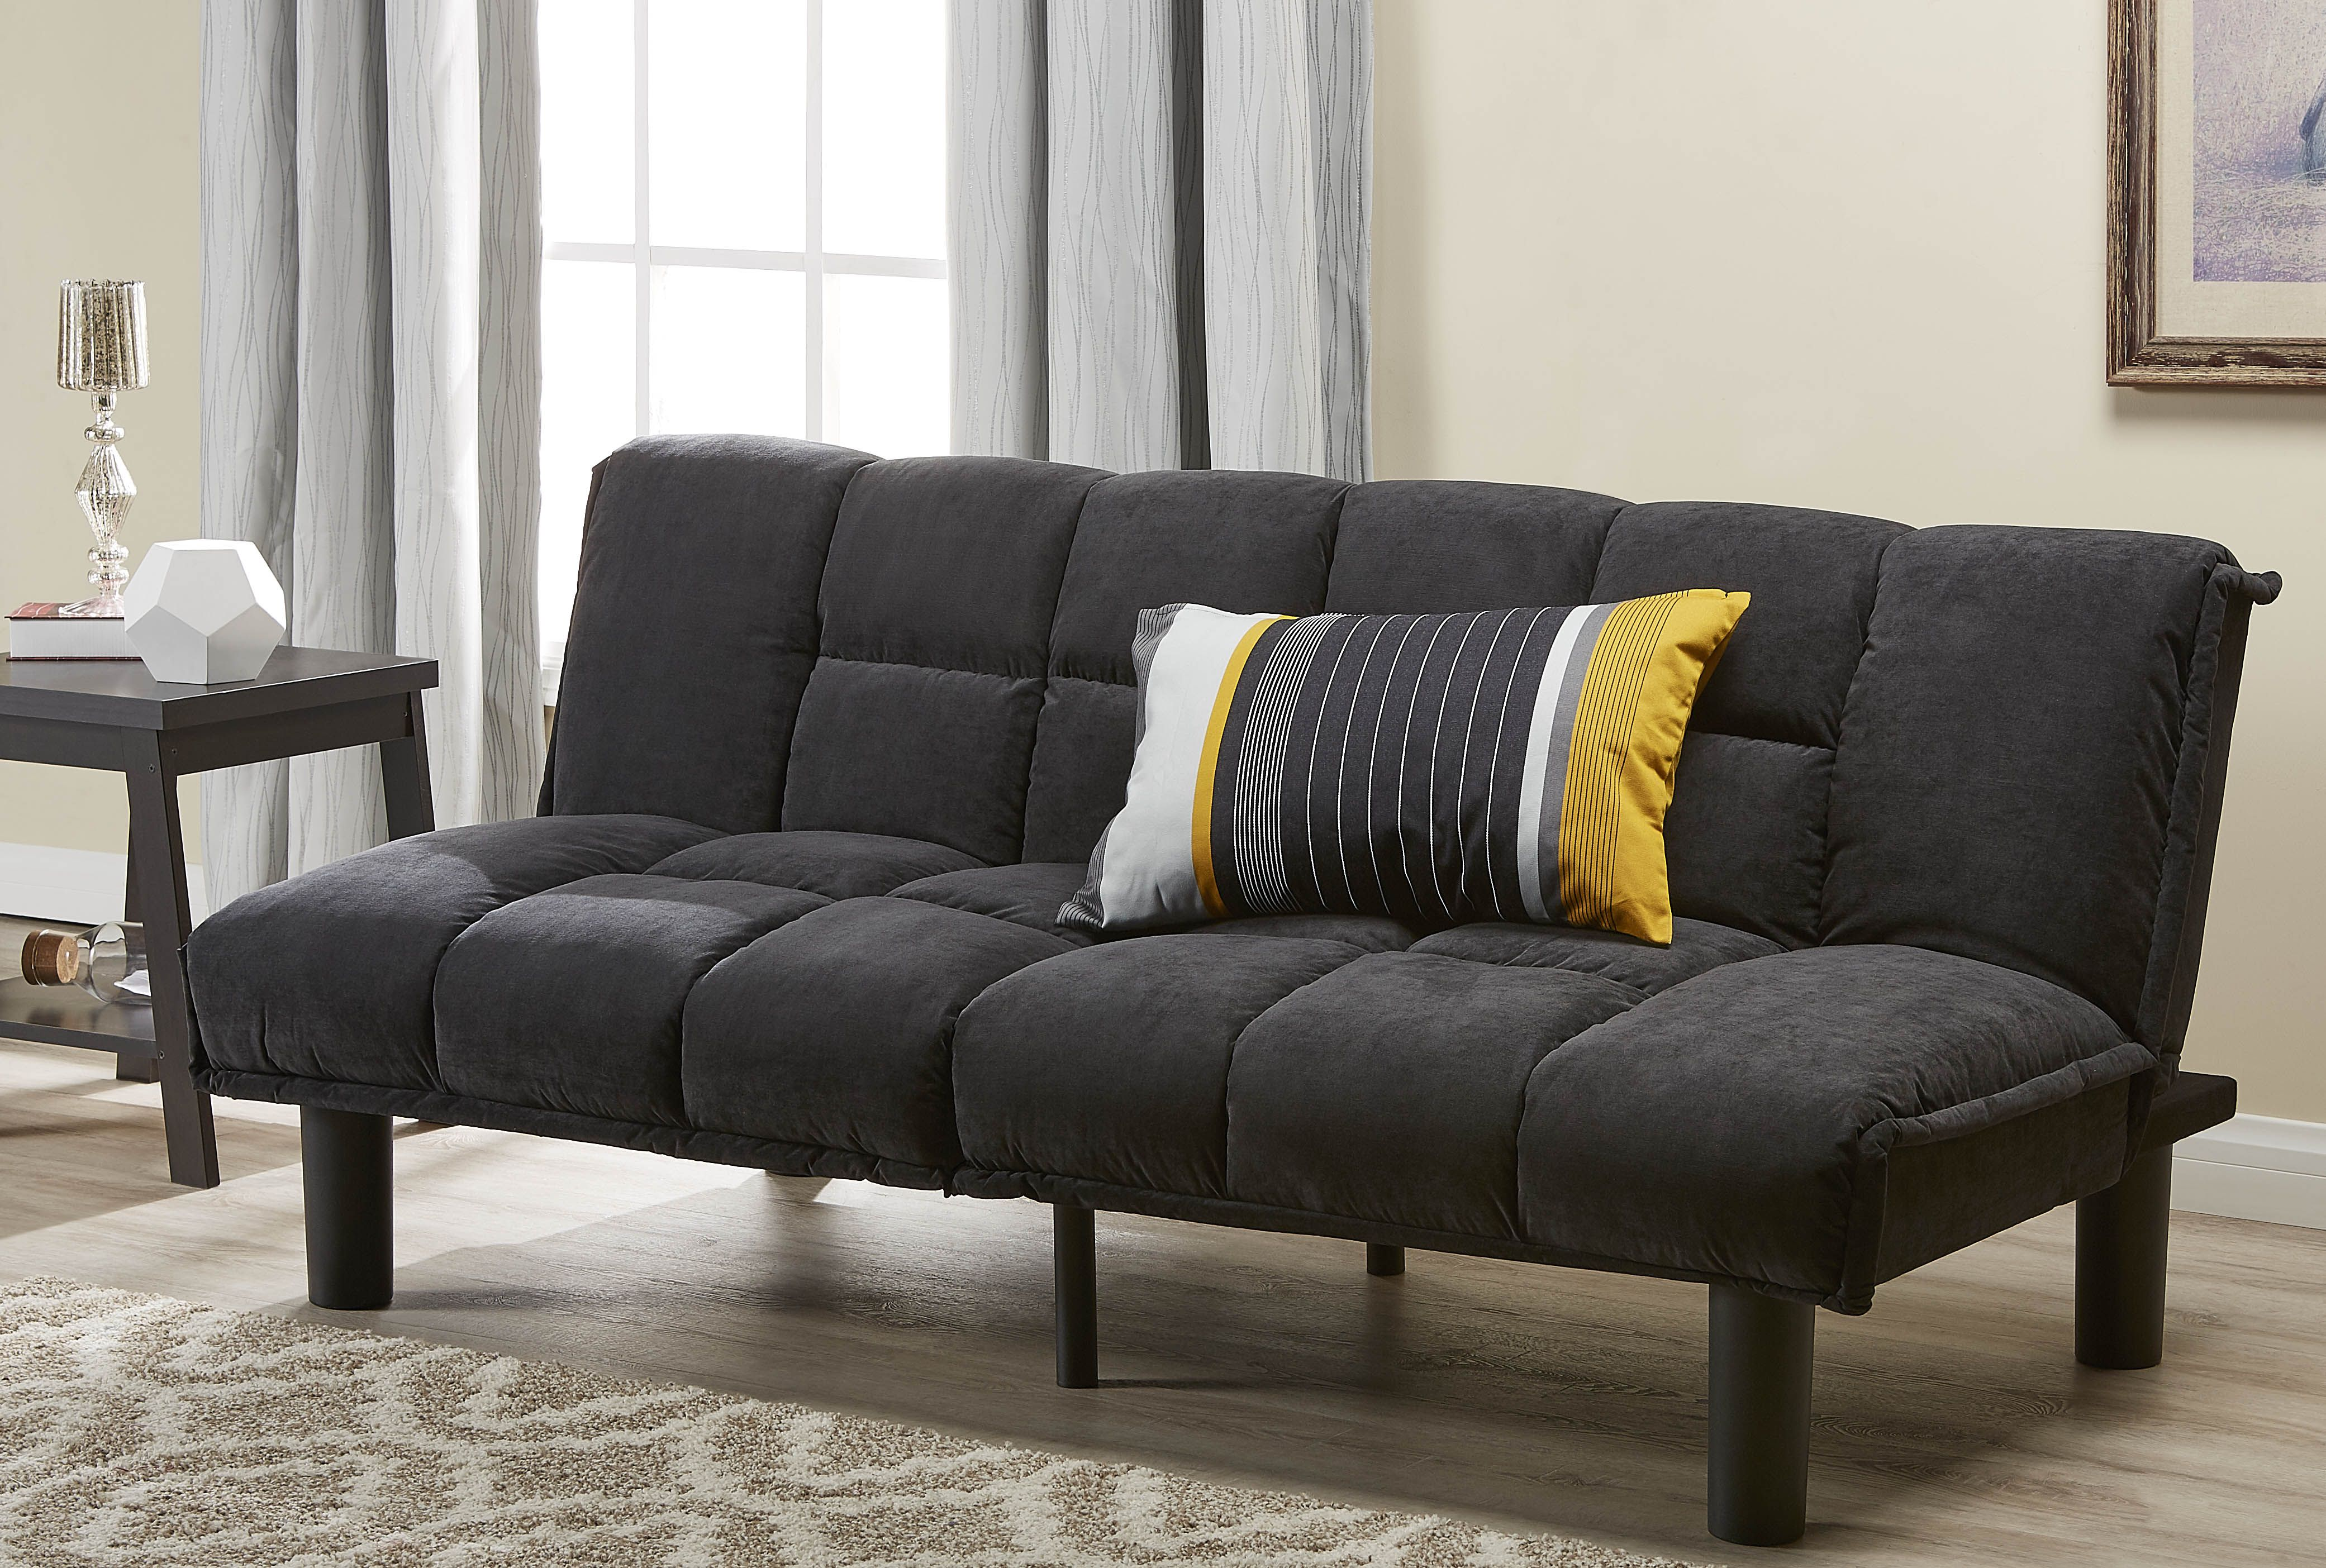 Home (With images) Futon, Futon sofa bed, Futon sofa